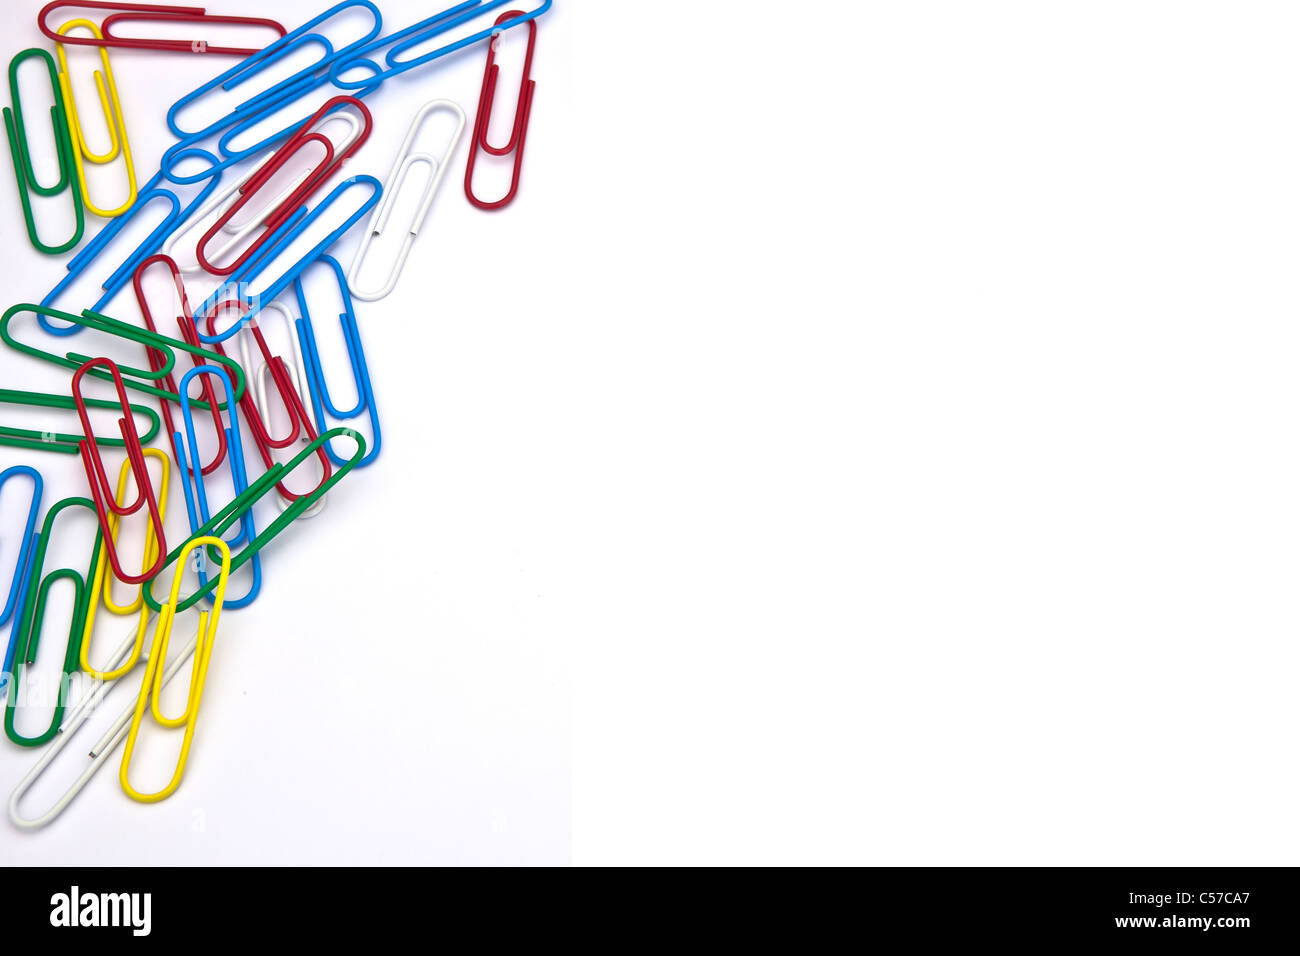 several paper clips as a frame on a white background - Stock Image